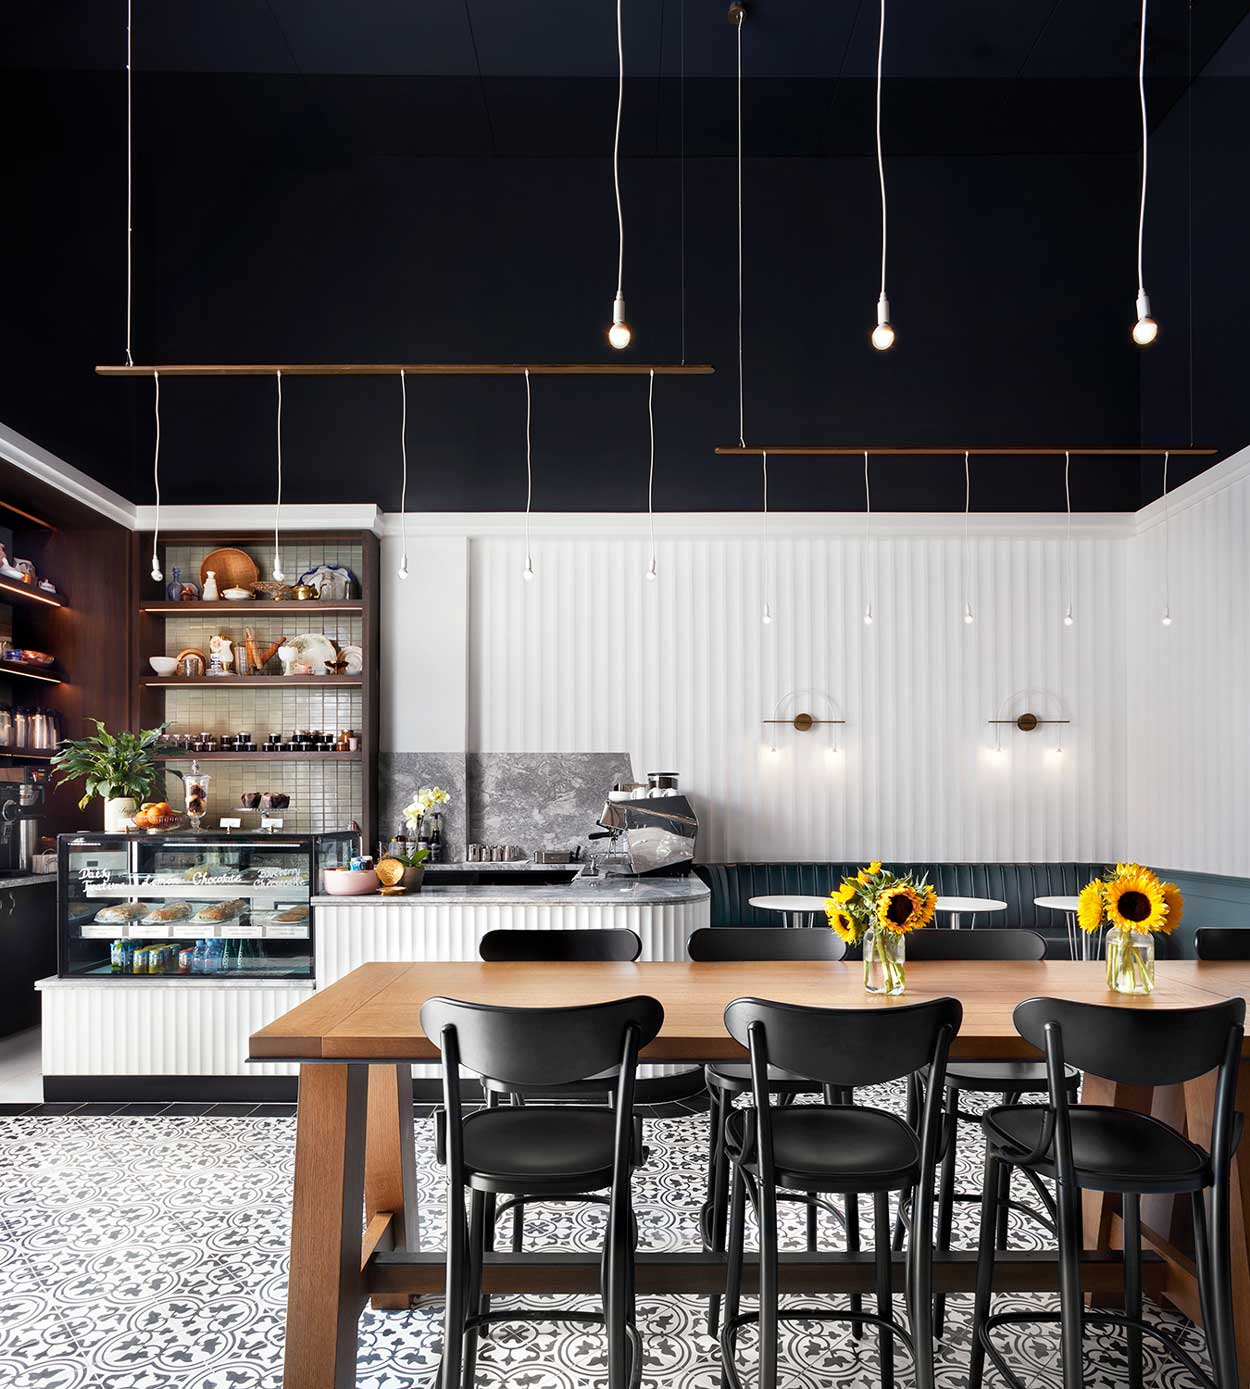 Three different moods for three distinct spaces at Victor Restaurant